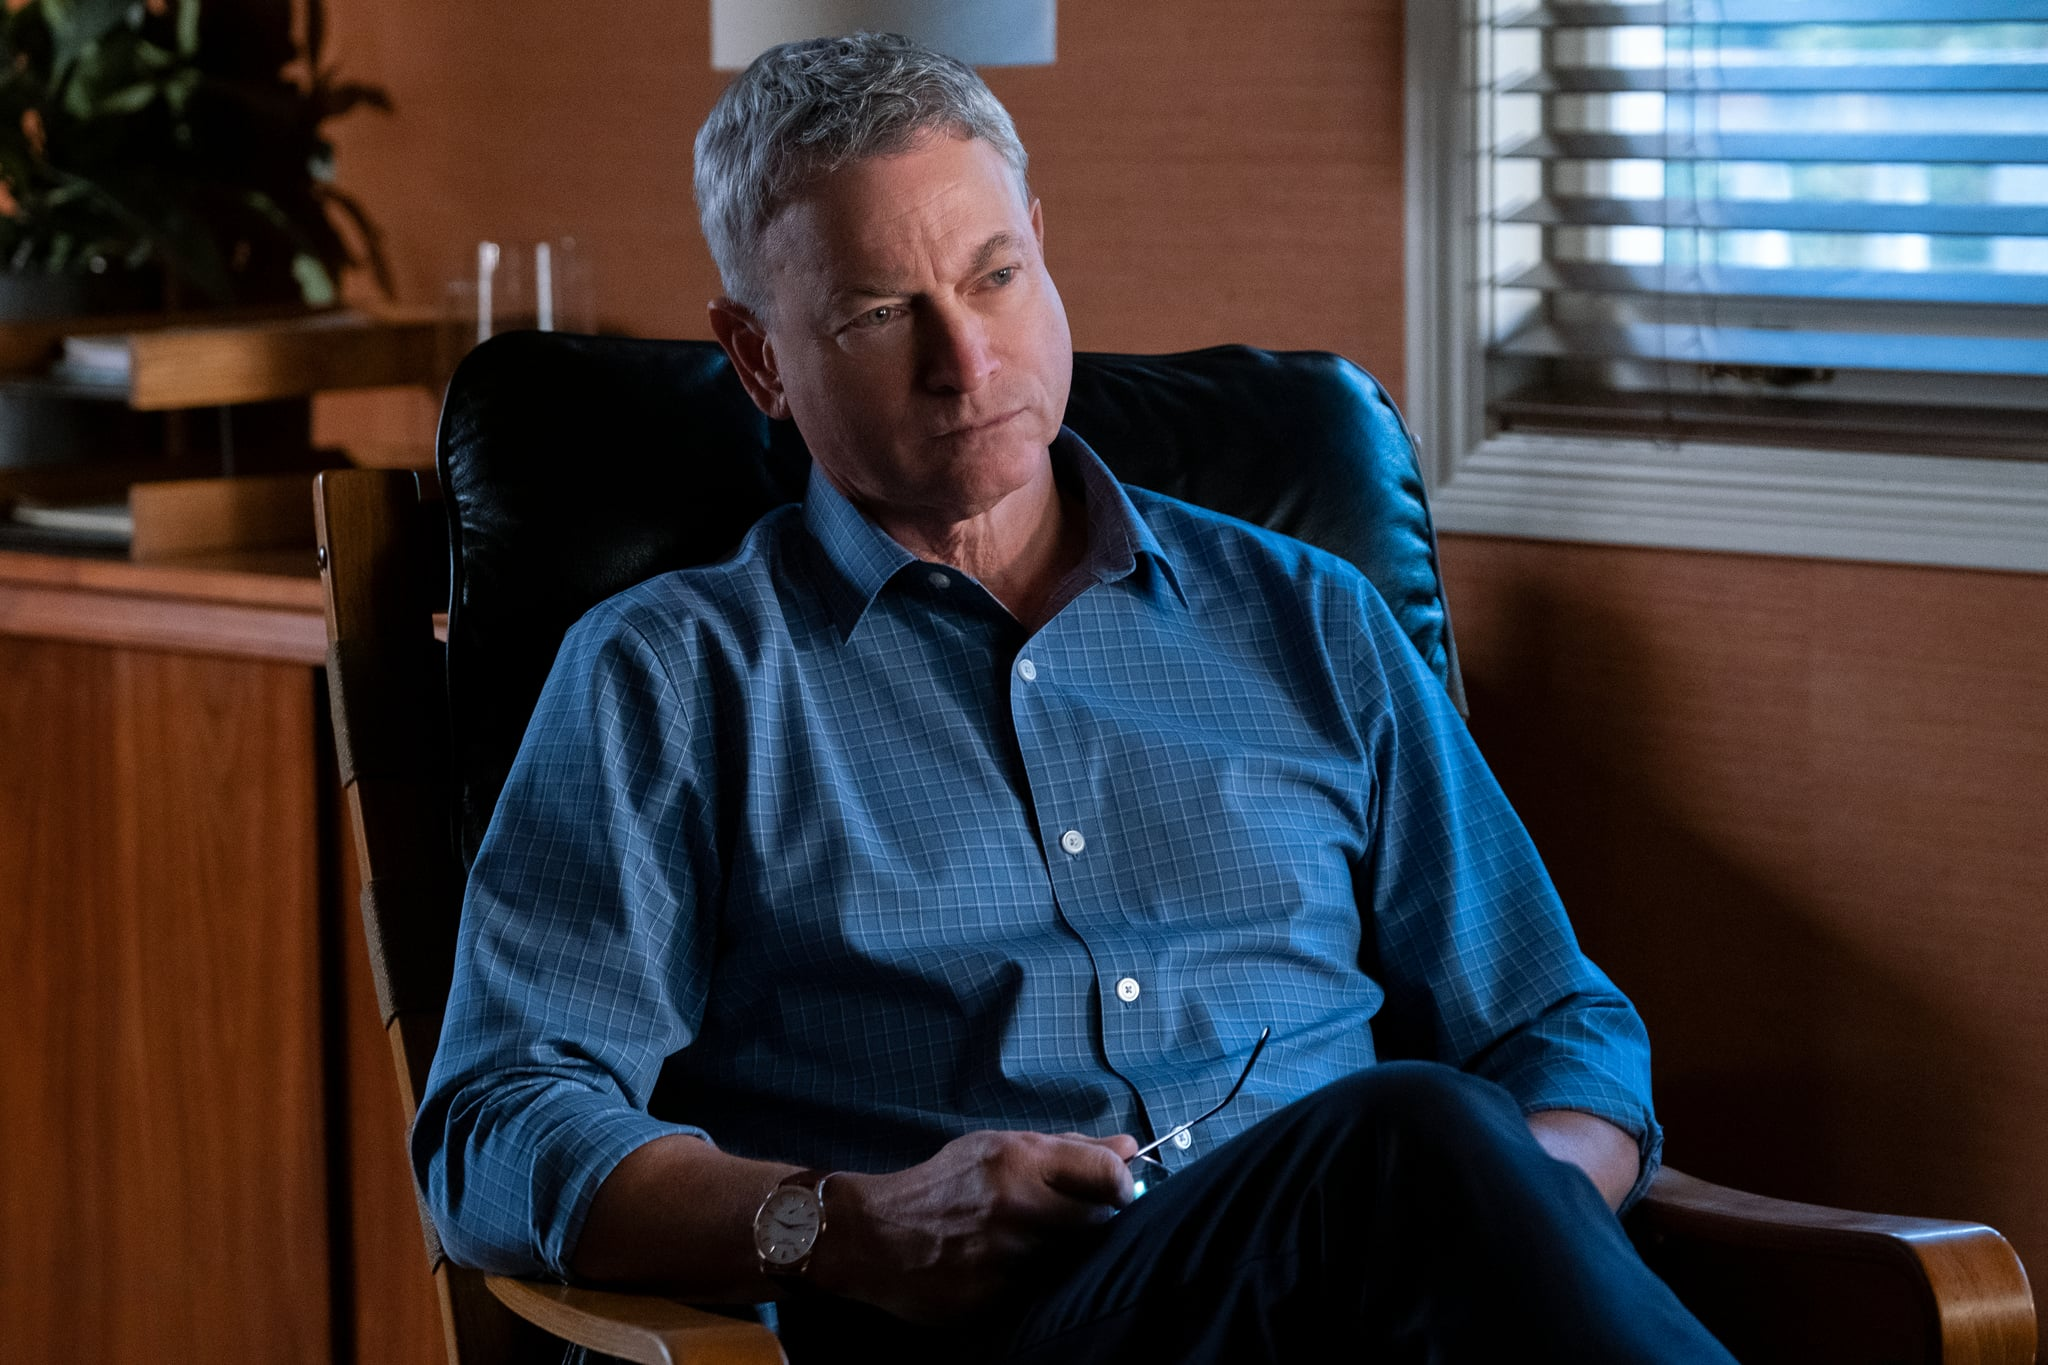 13 REASONS WHY (L to R) GARY SINISE as DR. ROBERT ELMAN in episode 402 of 13 REASONS WHY Cr. DAVID MOIR / NETFLIX 2020